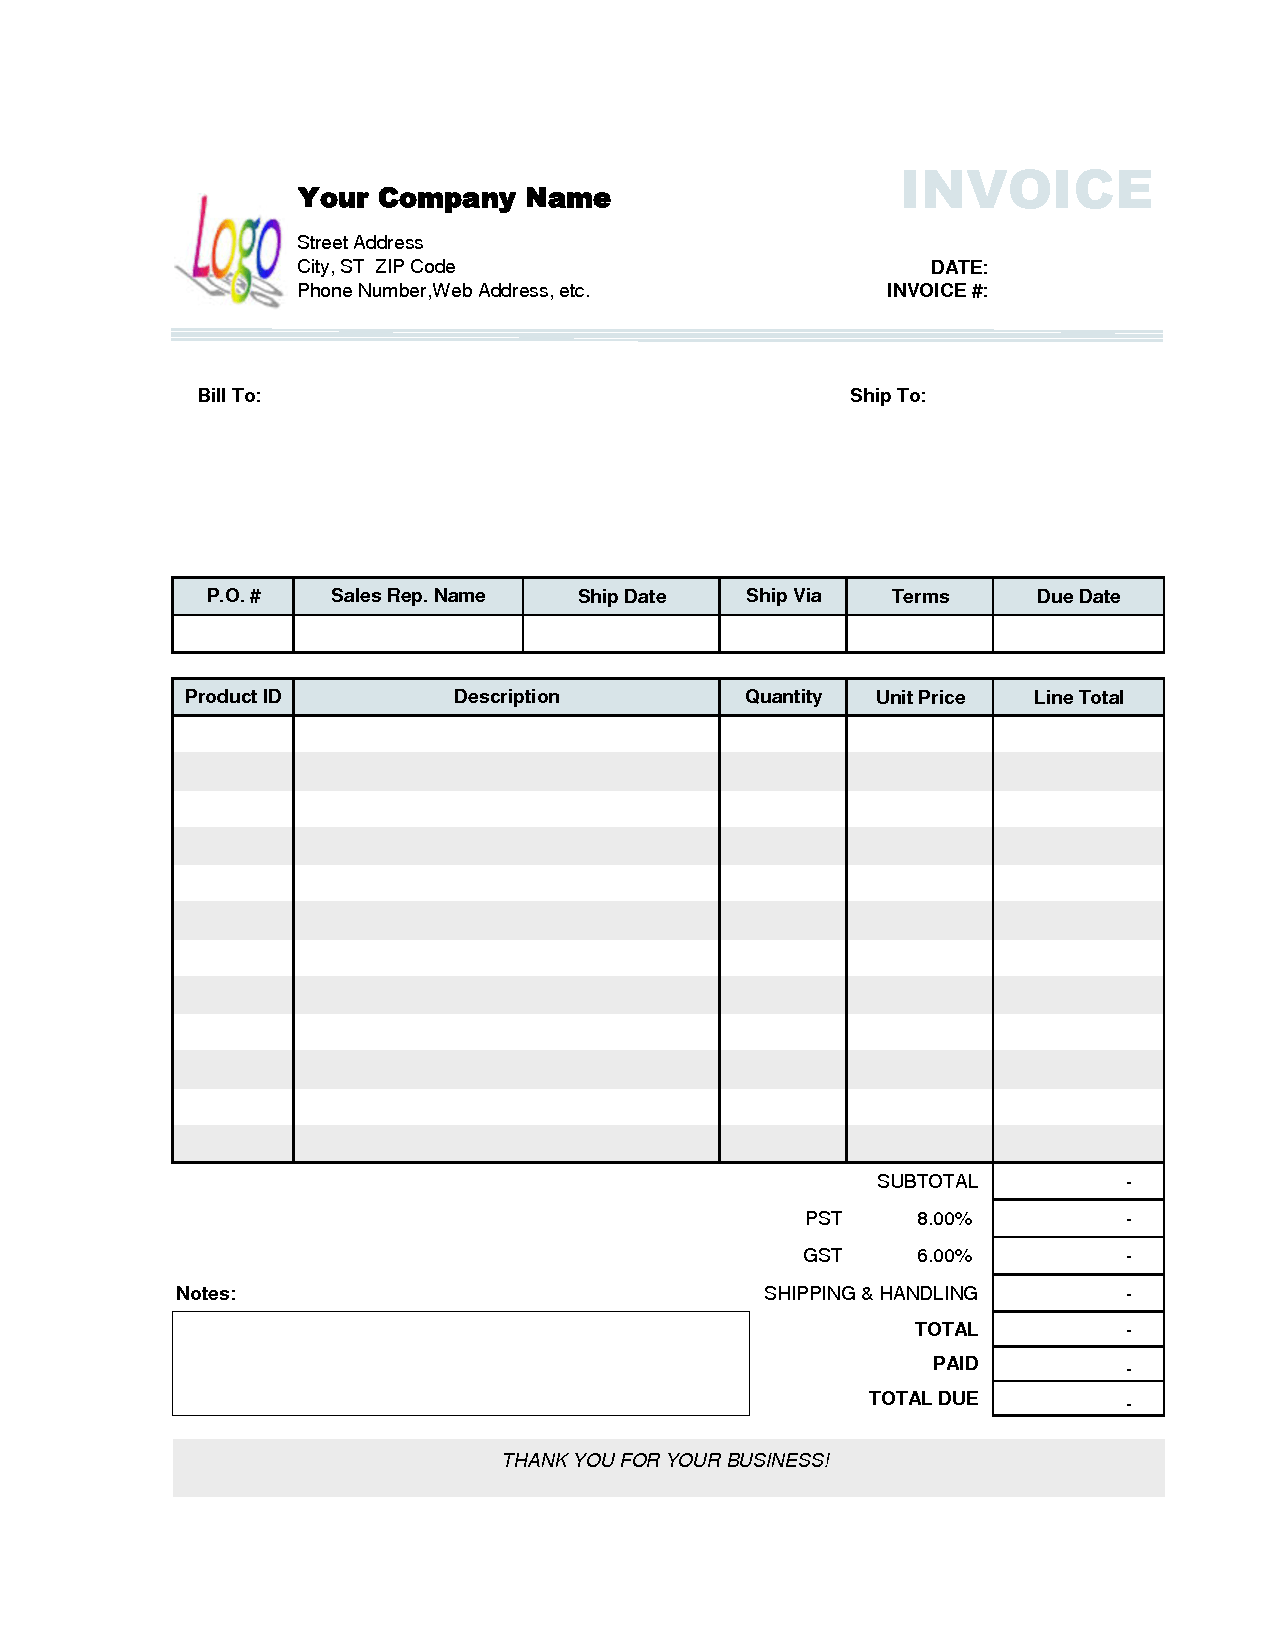 Lawn Mowing Invoice Template Free and Business Invoice Template Invoice Example